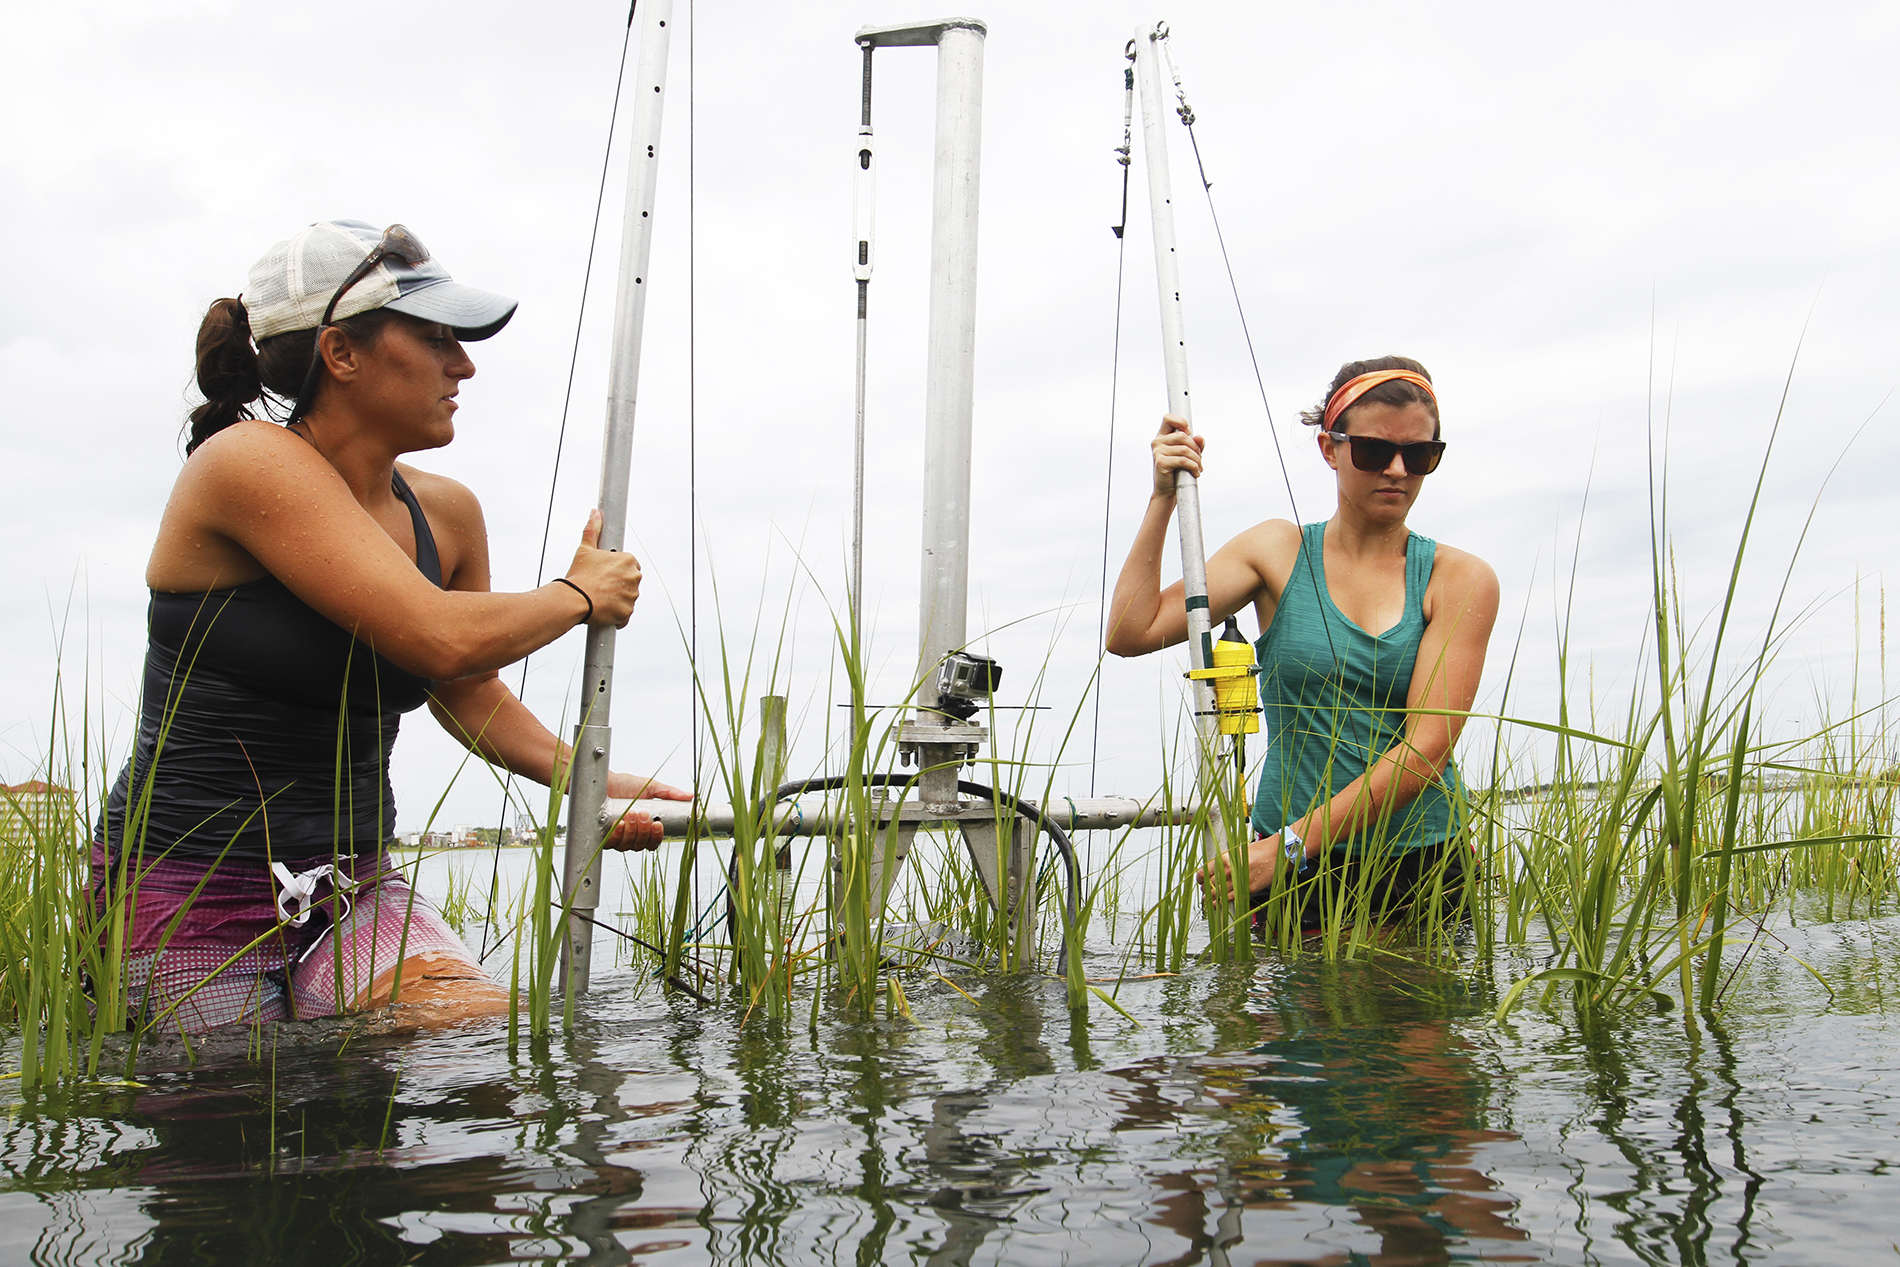 two girls place a sonar rig in a lake